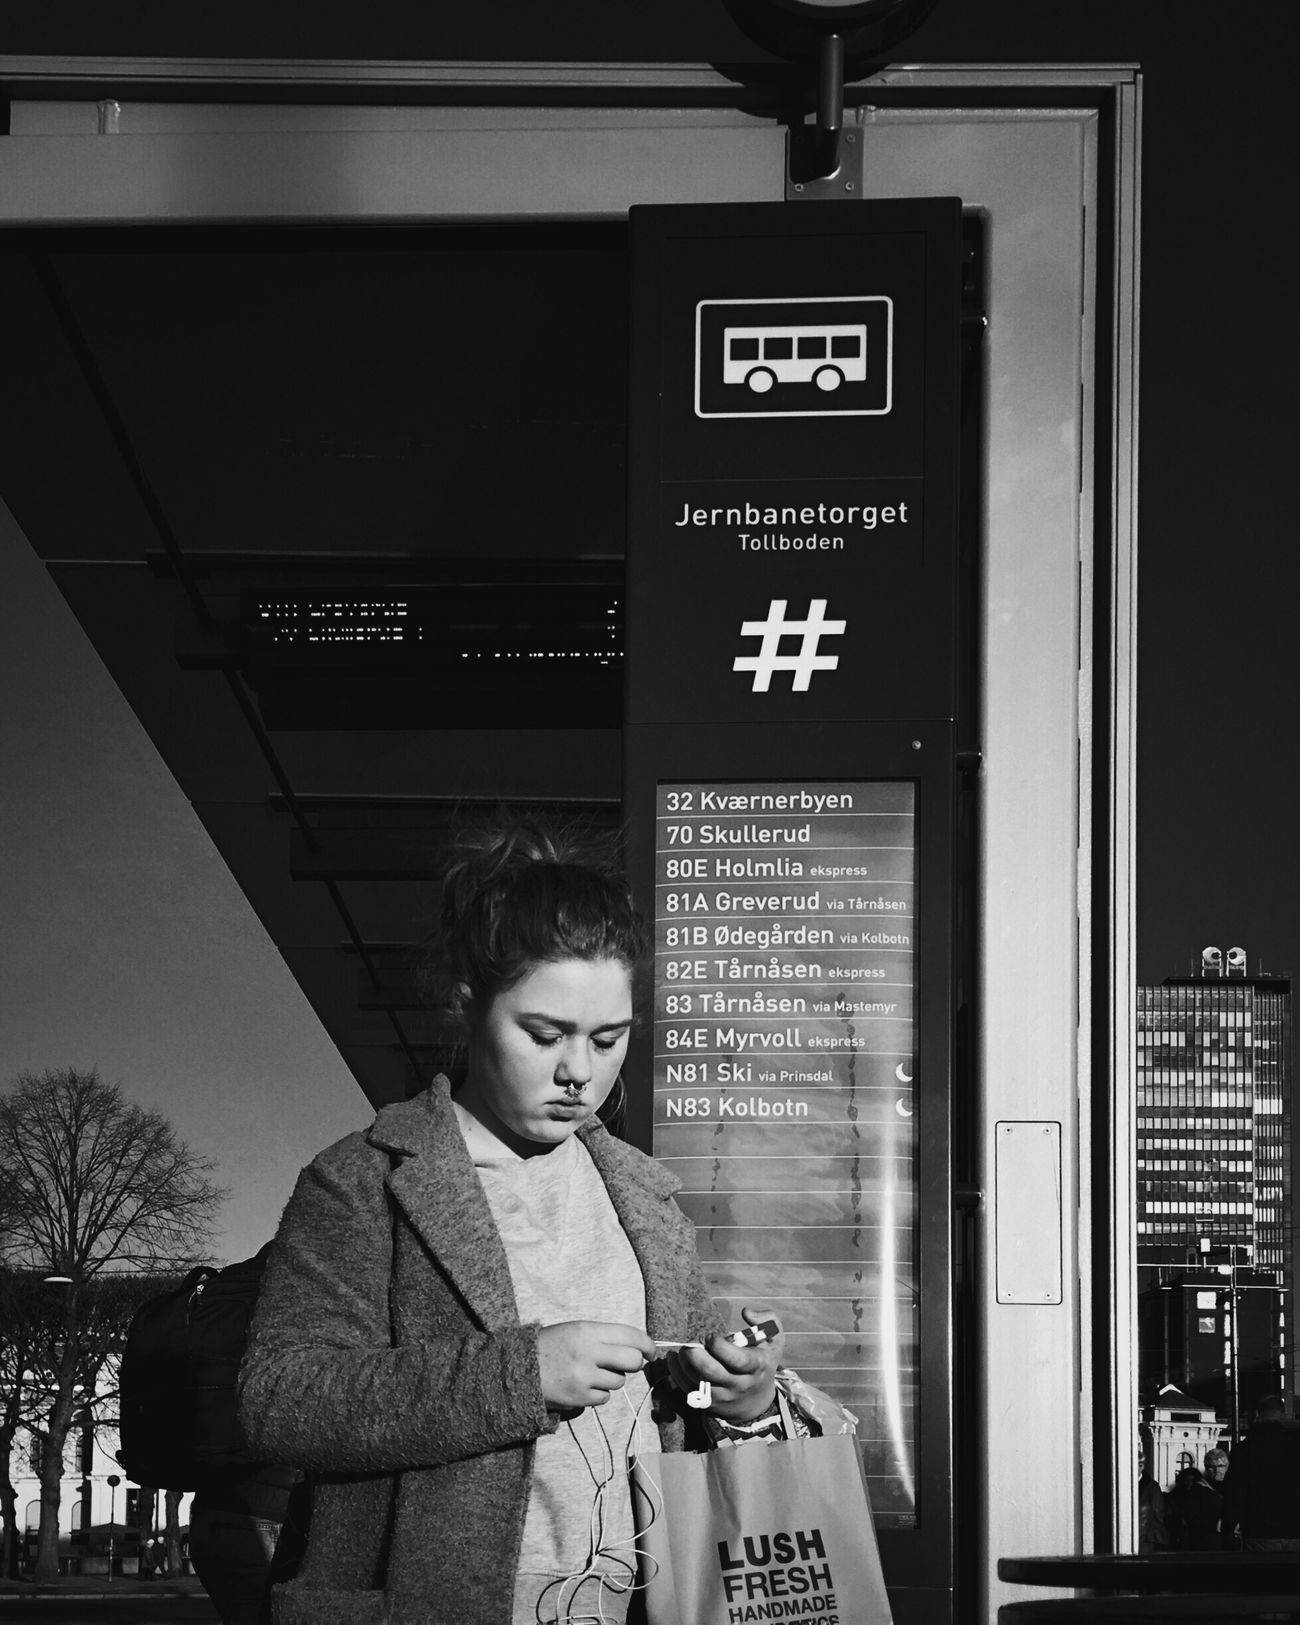 Meeting point • Oslostreets Streetphotography Street Streetphoto_bw Streetsofoslo Streetbwcolor Black & White Information Sign One Person Waiting